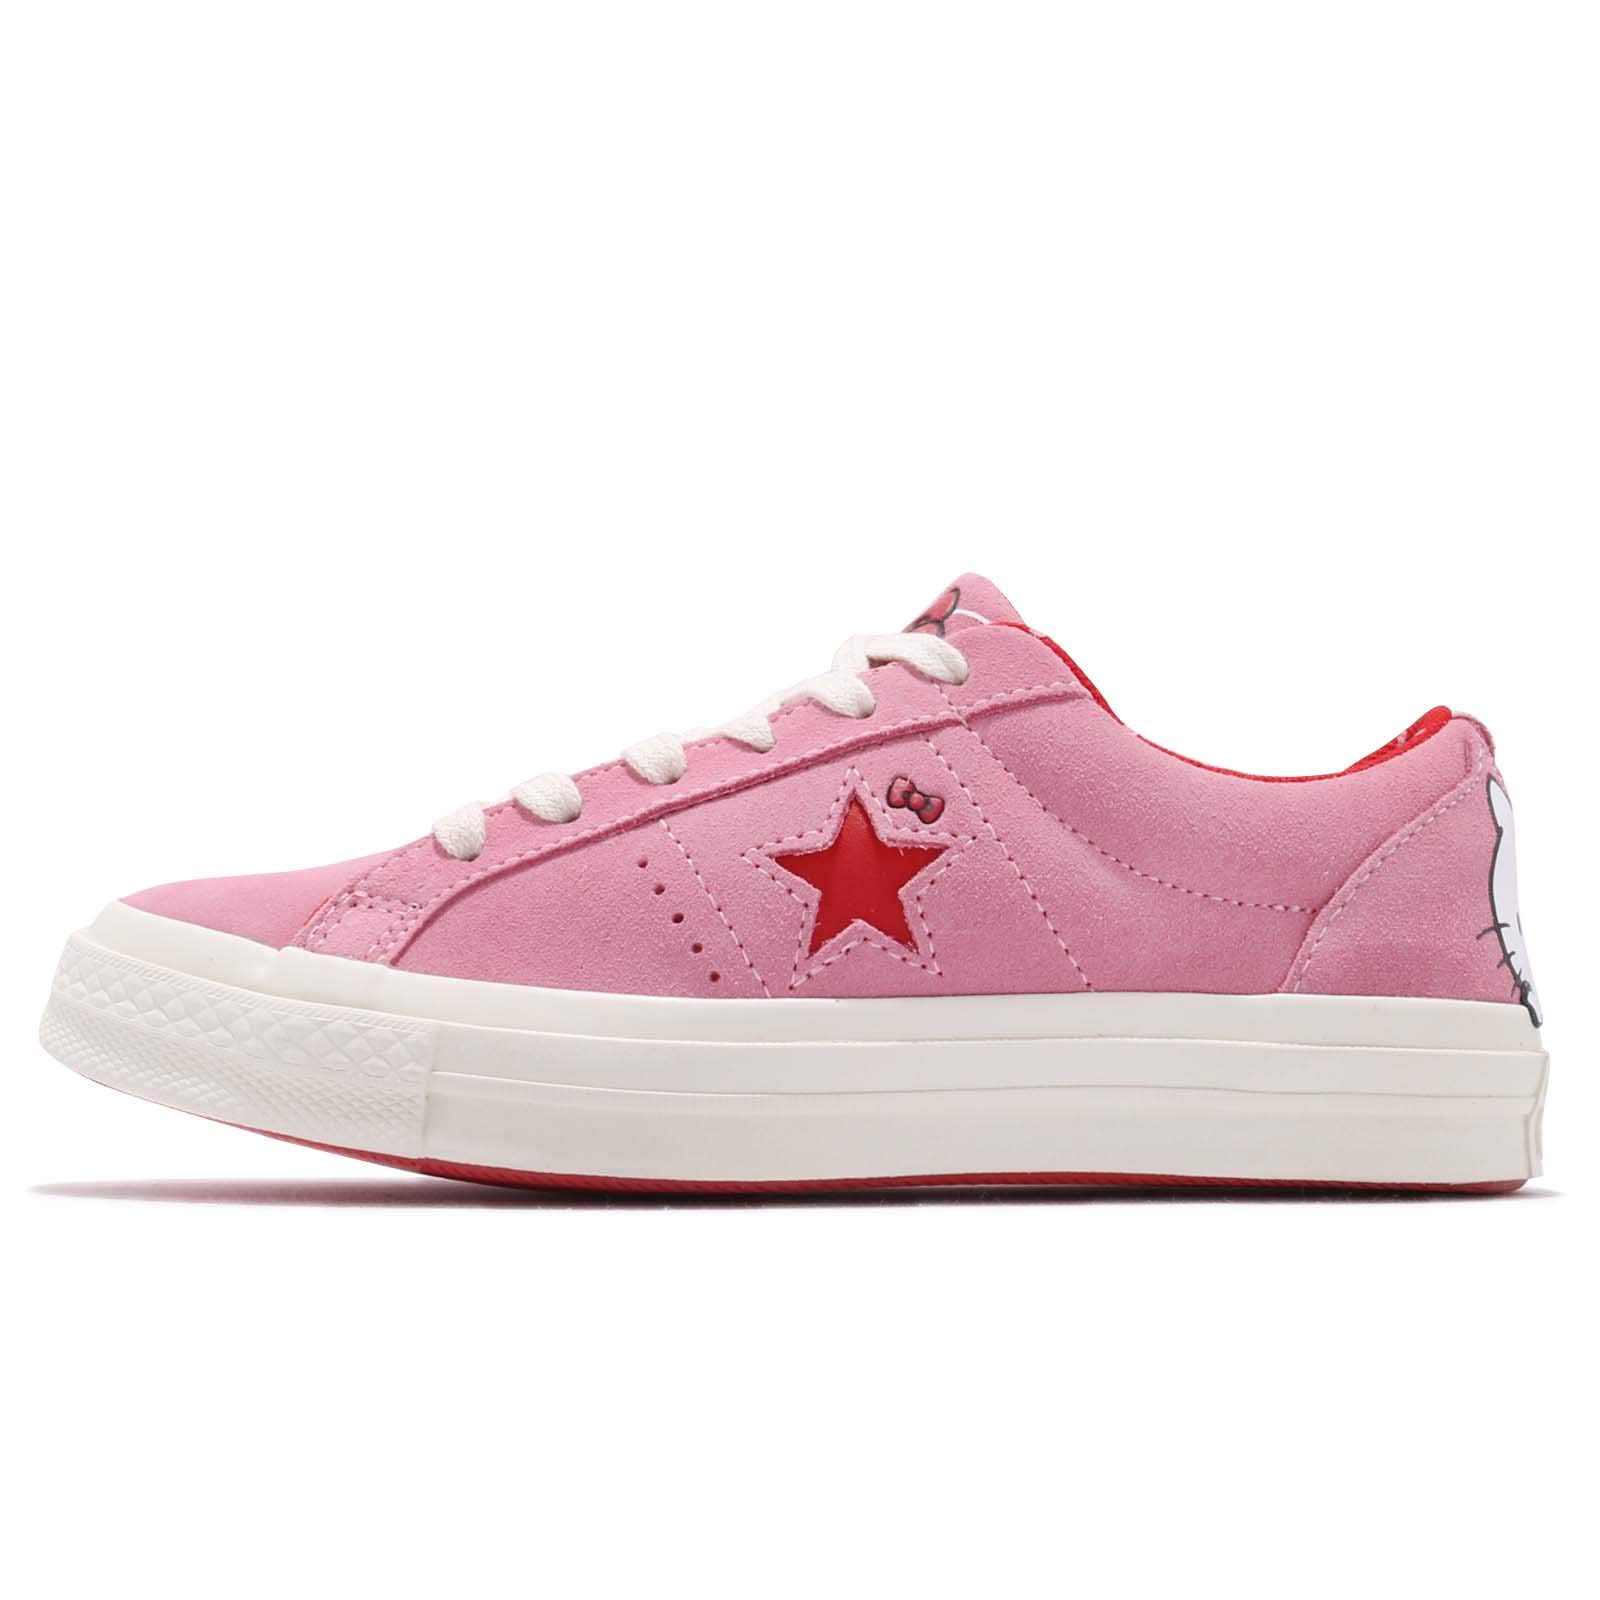 37f4611b4439f Galleon - Converse Chuck Taylor All Star Lo Hello Kitty Fashion ...